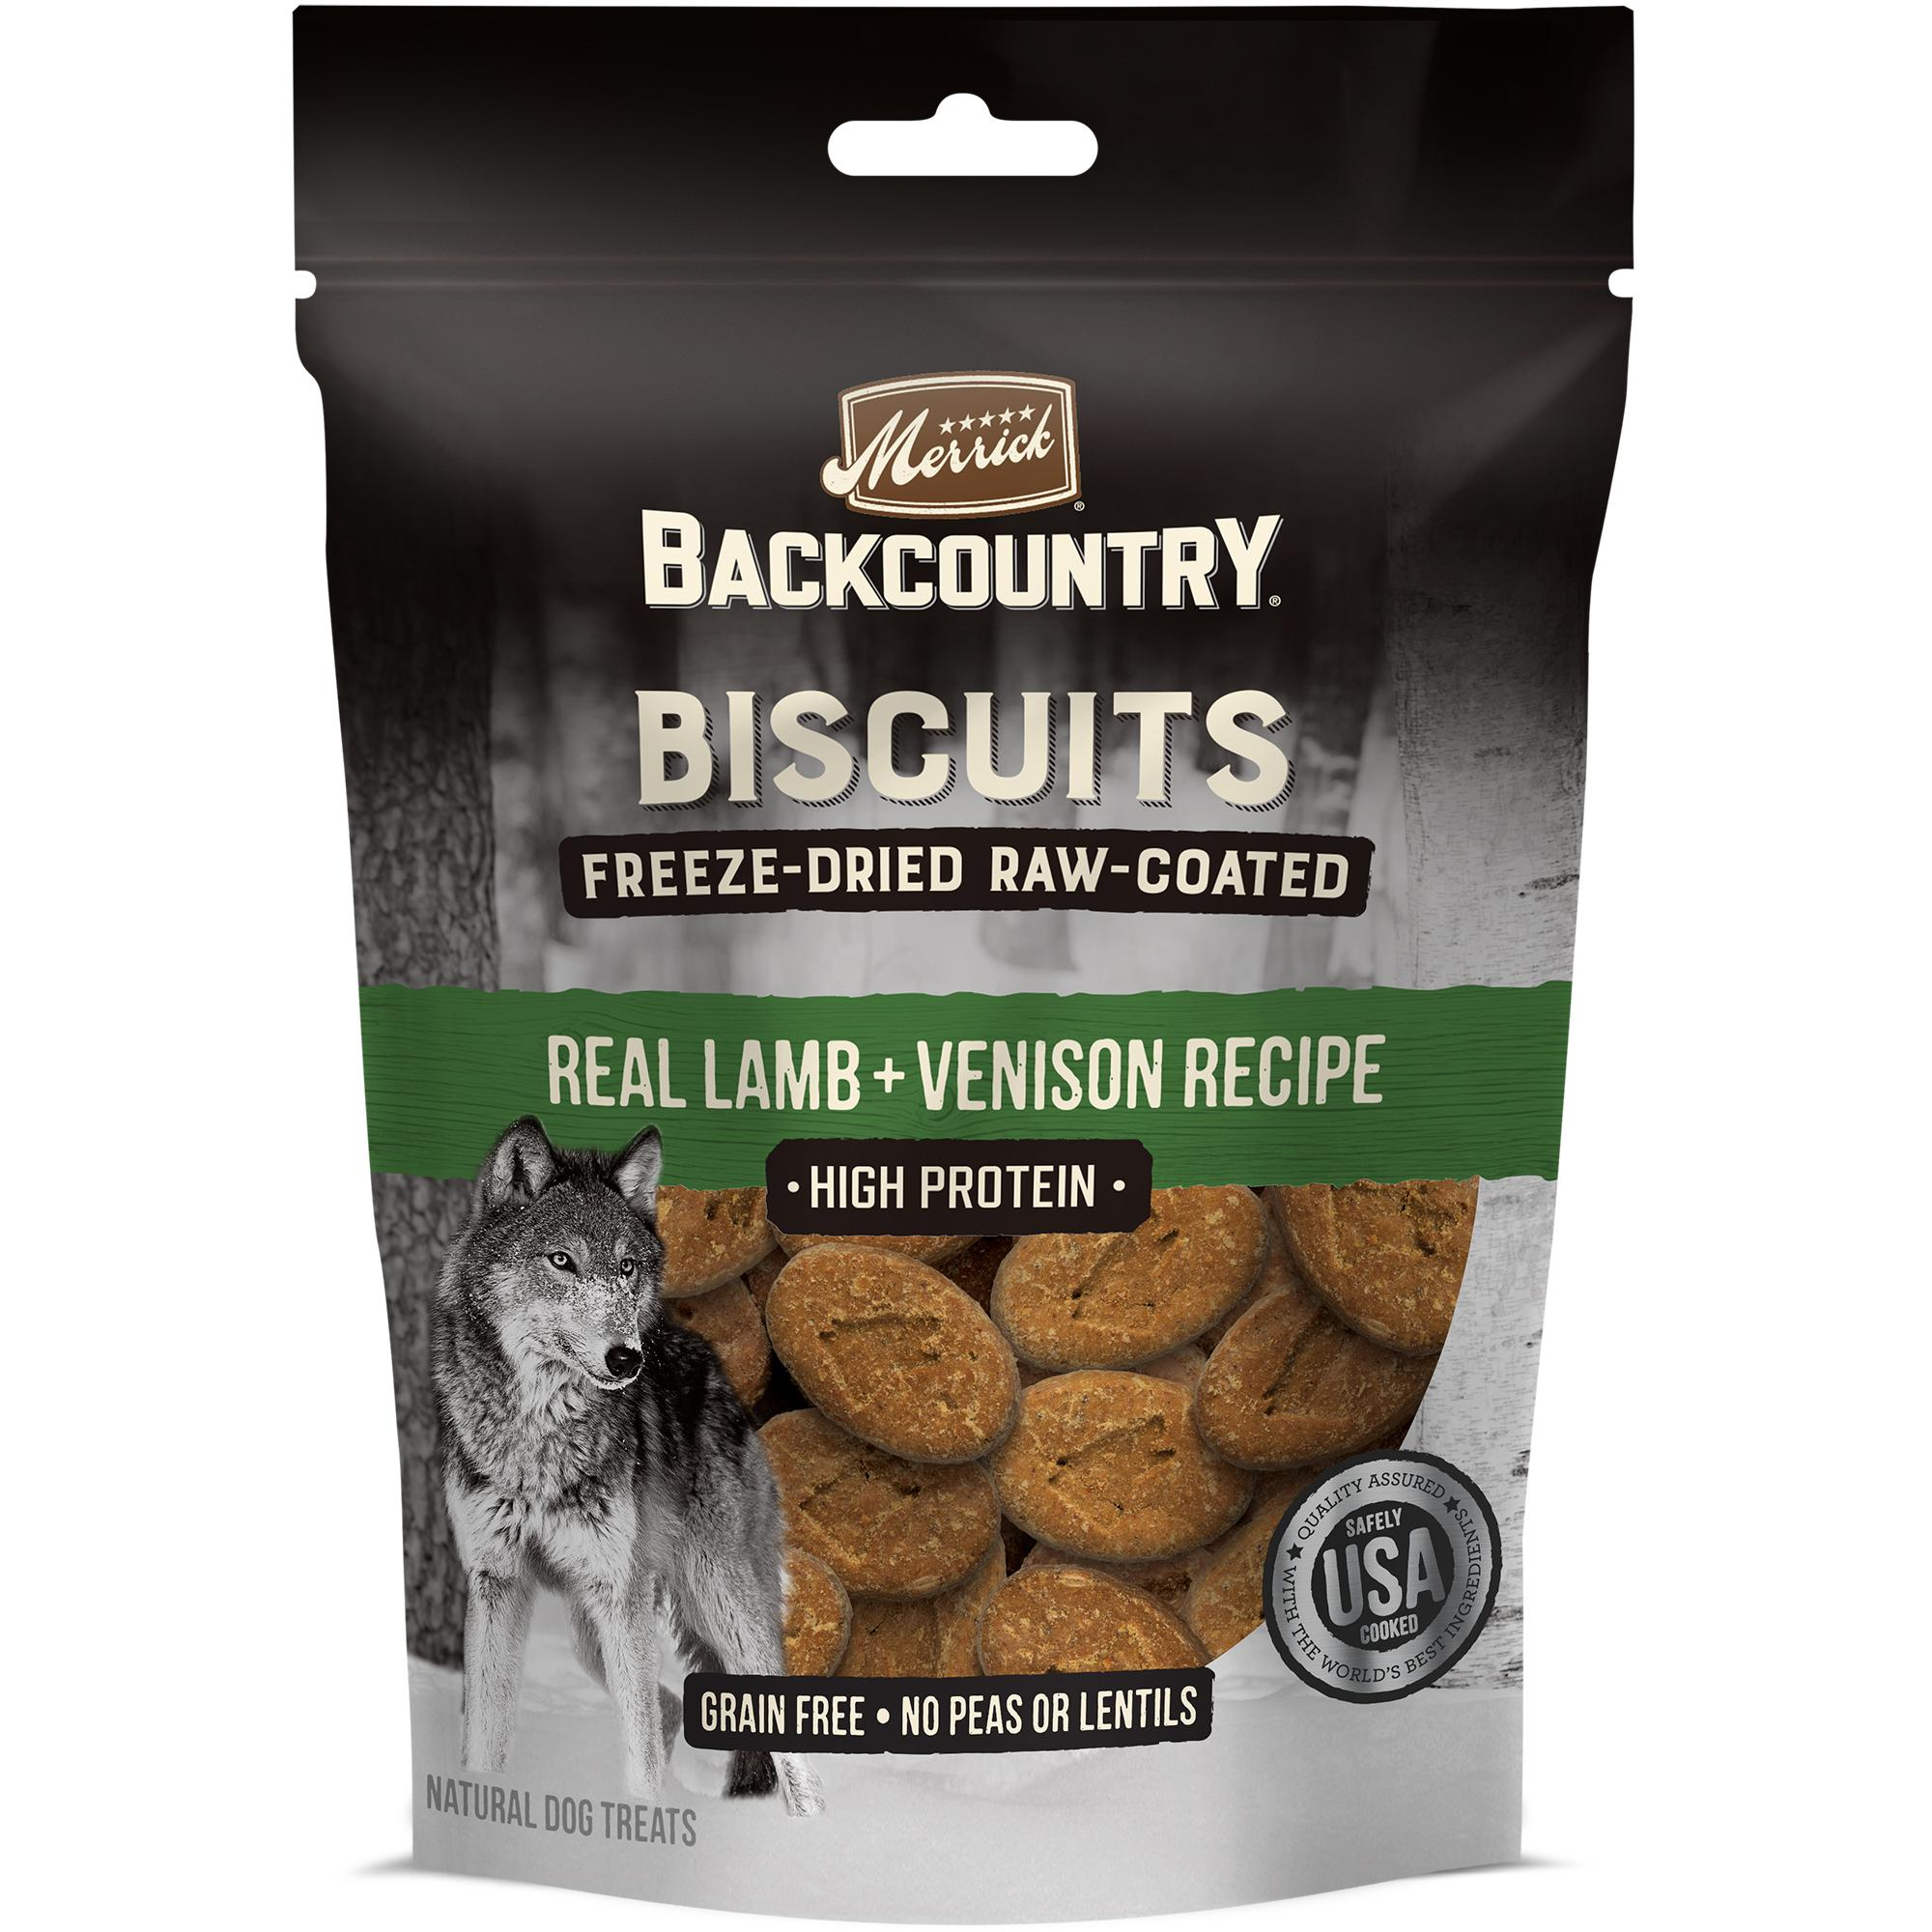 Merrick Backcountry Biscuits Real Lamb + Venison Grain-Free Raw-Coated Freeze-Dried Dog Treats, 10-oz